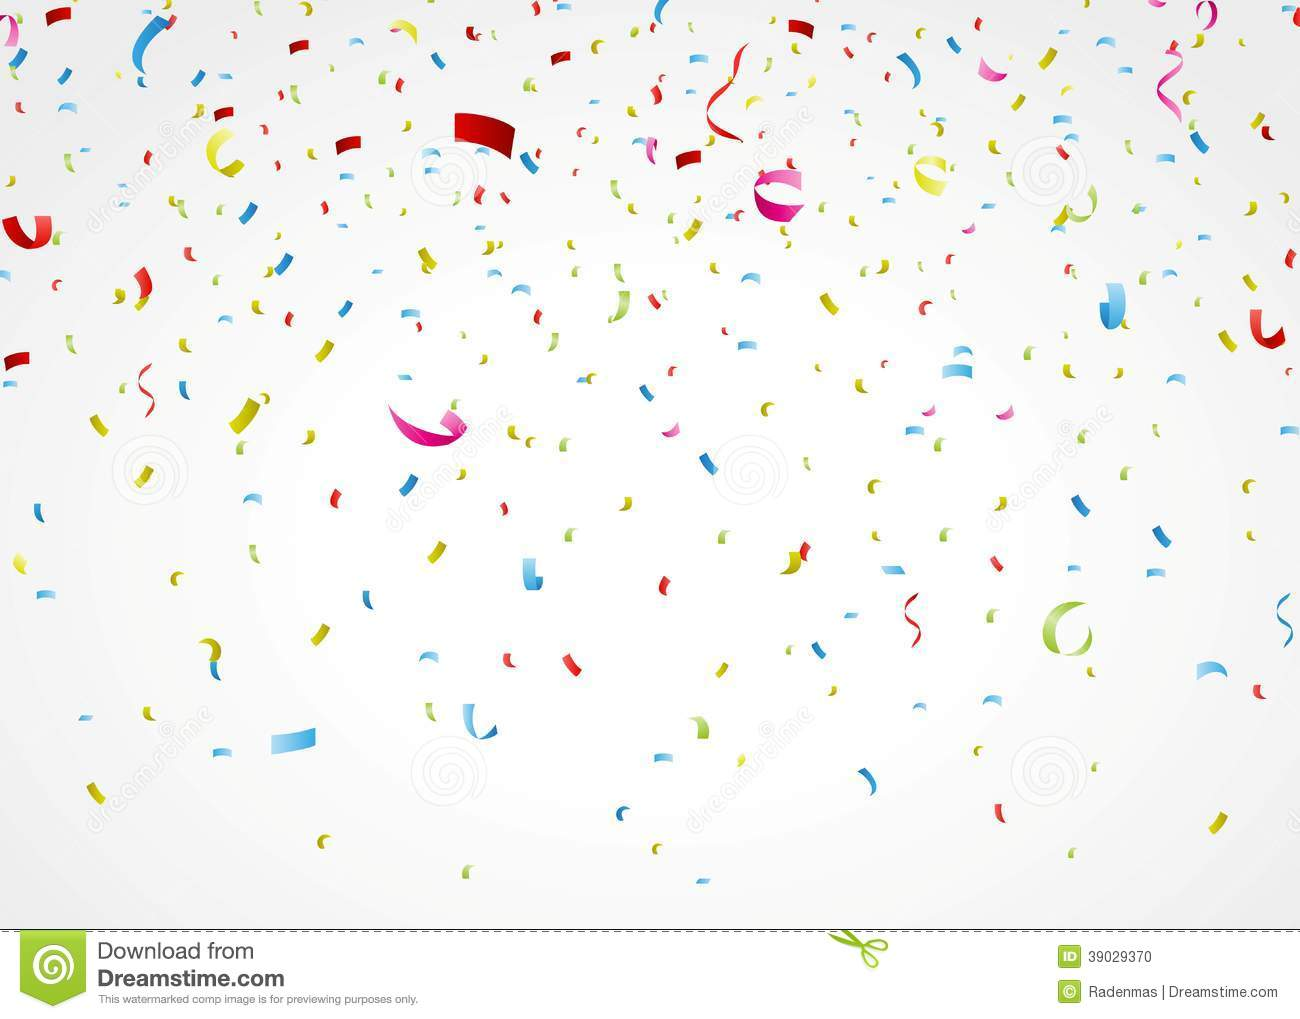 Rose Petals Falling Wallpaper Transparent Gif Colorful Confetti On White Background Stock Vector Image